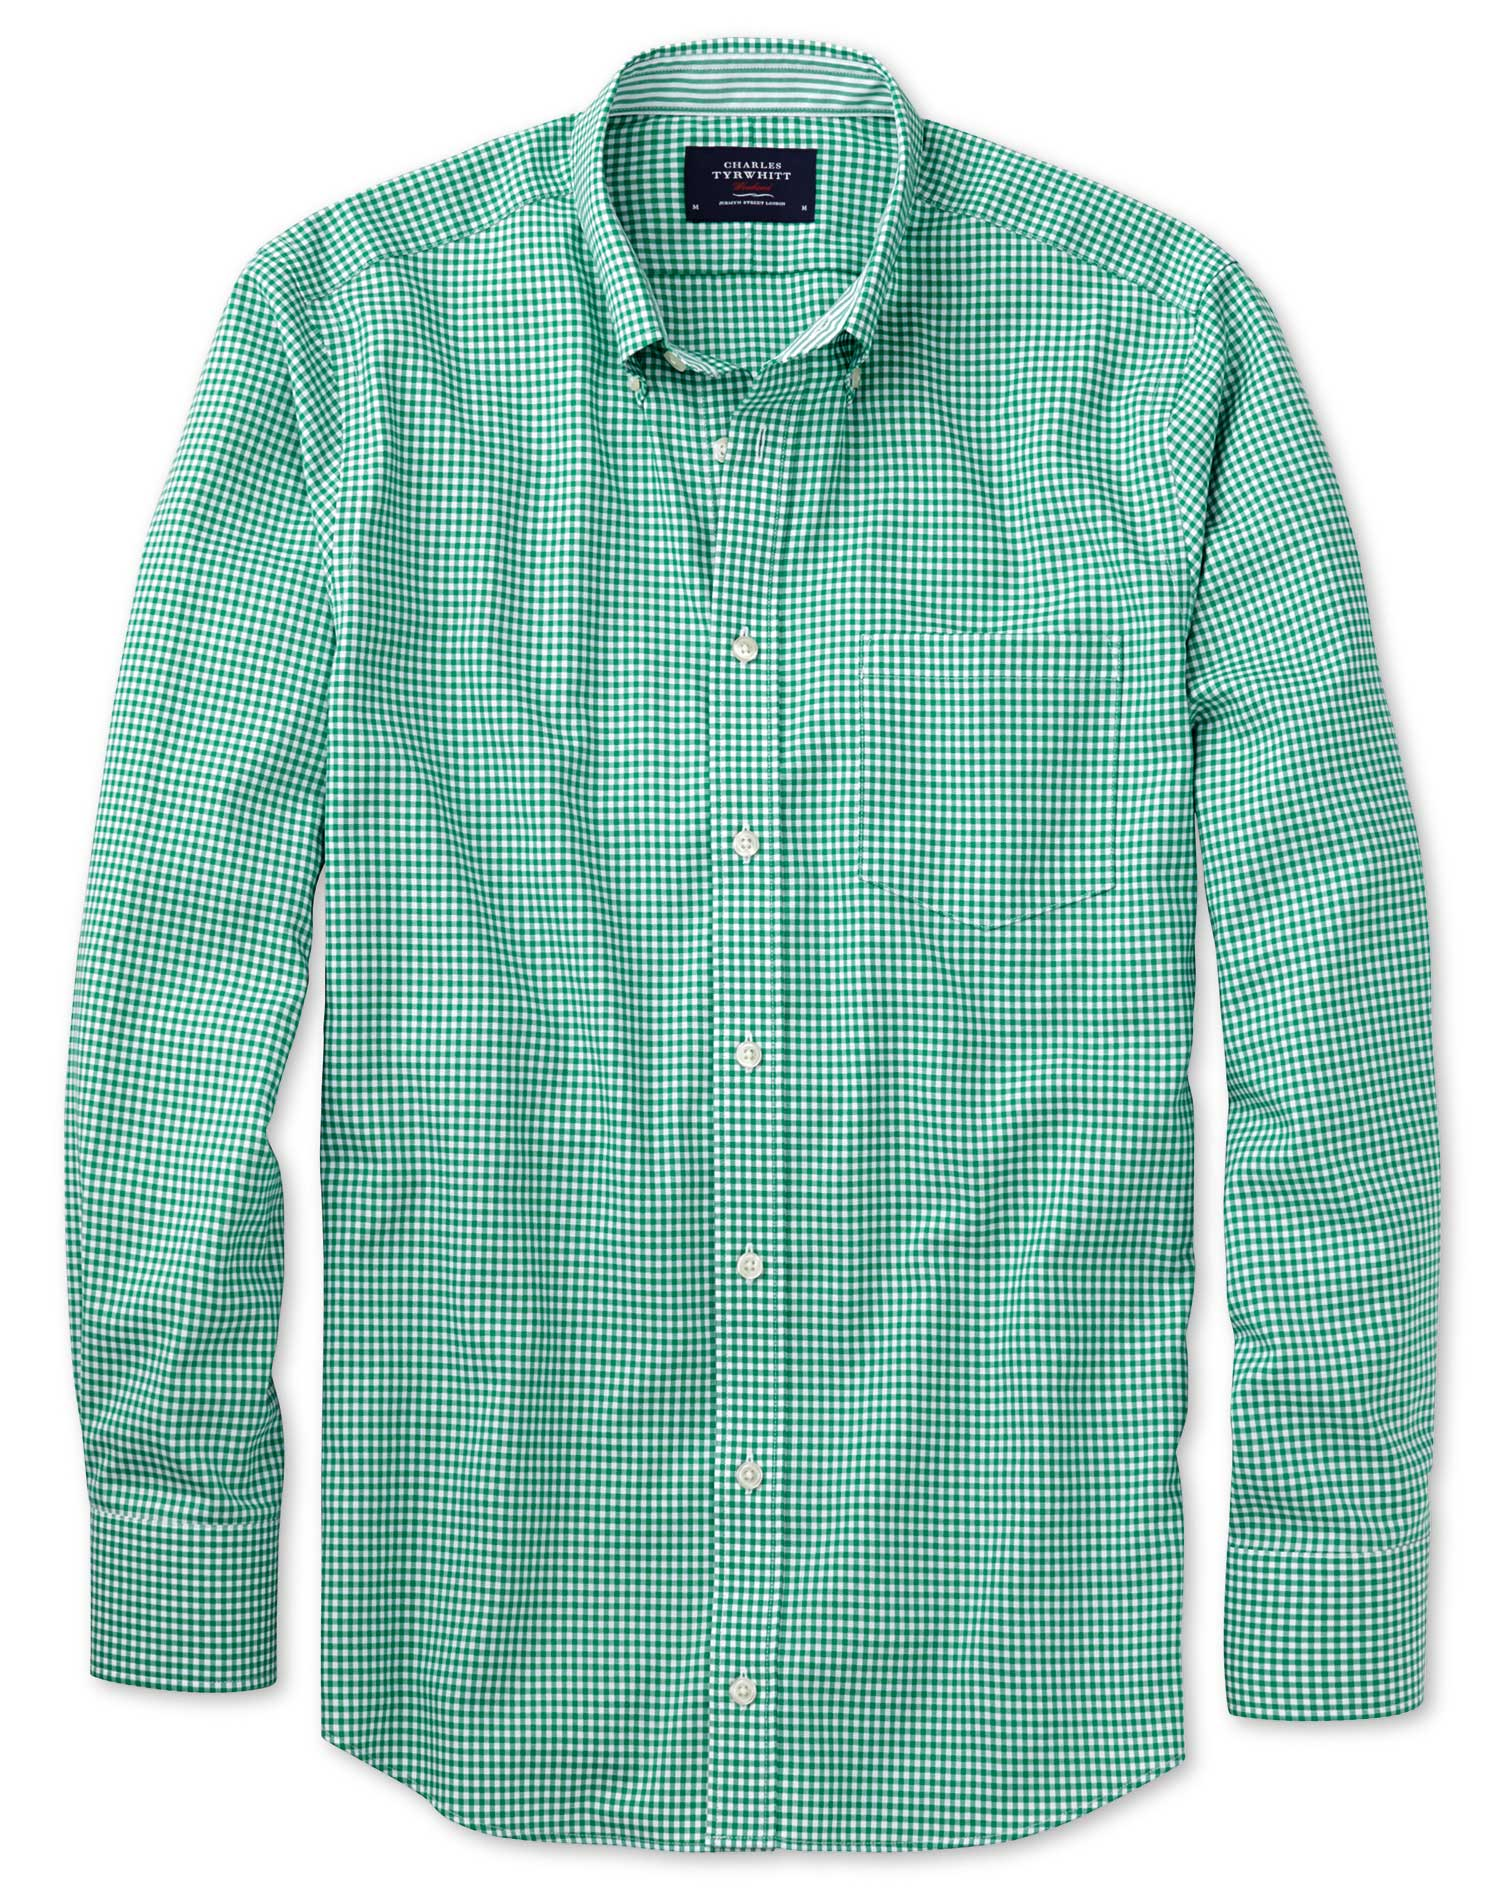 Extra Slim Fit Non-Iron Oxford Gingham Mid Green Cotton Shirt Single Cuff Size Small by Charles Tyrw